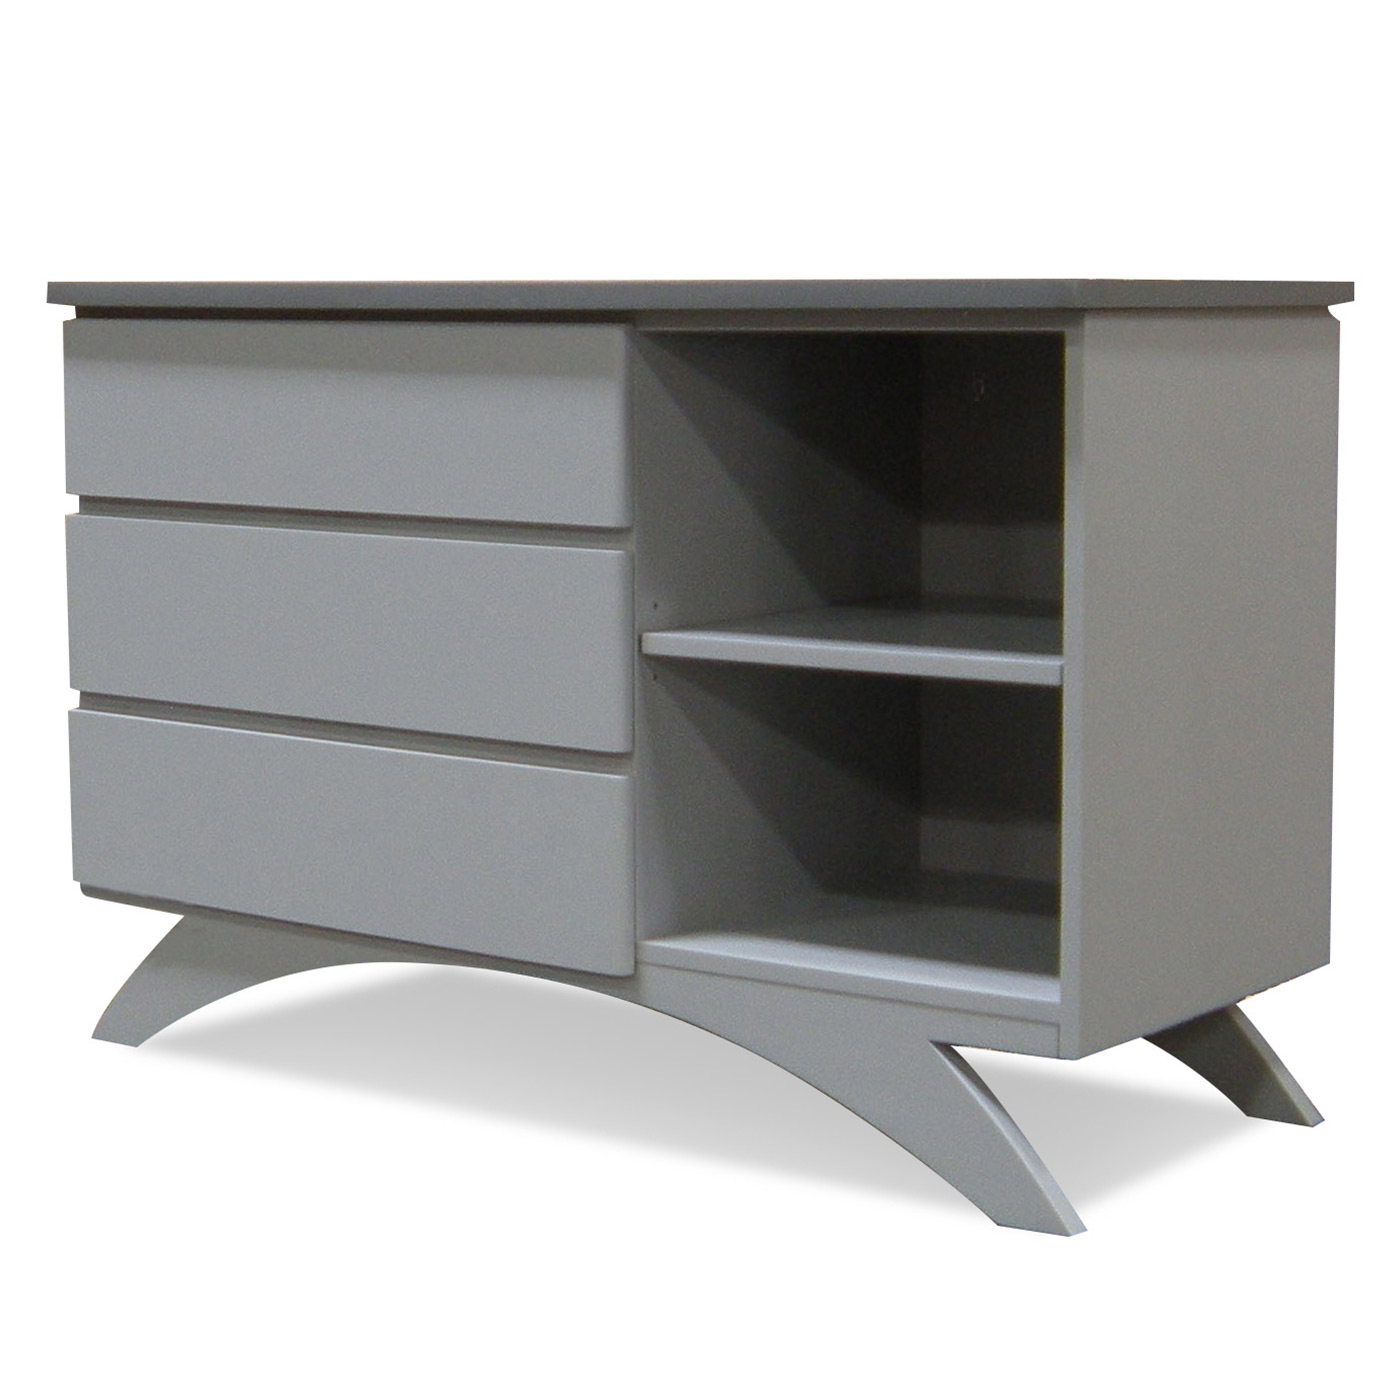 Eden Baby Madison Combo Dresser With 3 Drawers In Pebble Grey Seal Free Shipping